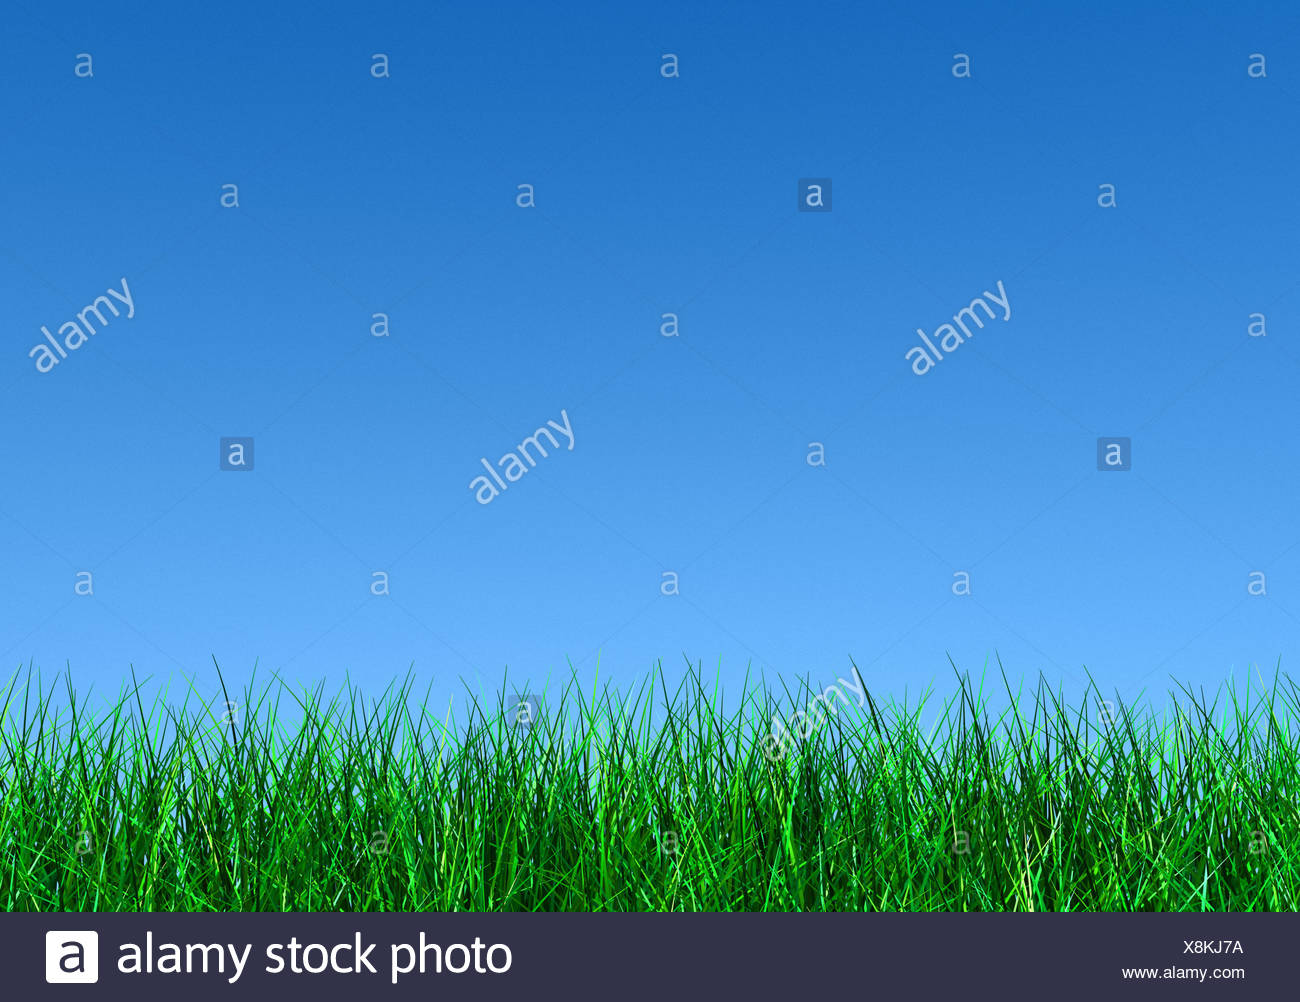 Blue sky over grass - Stock Image